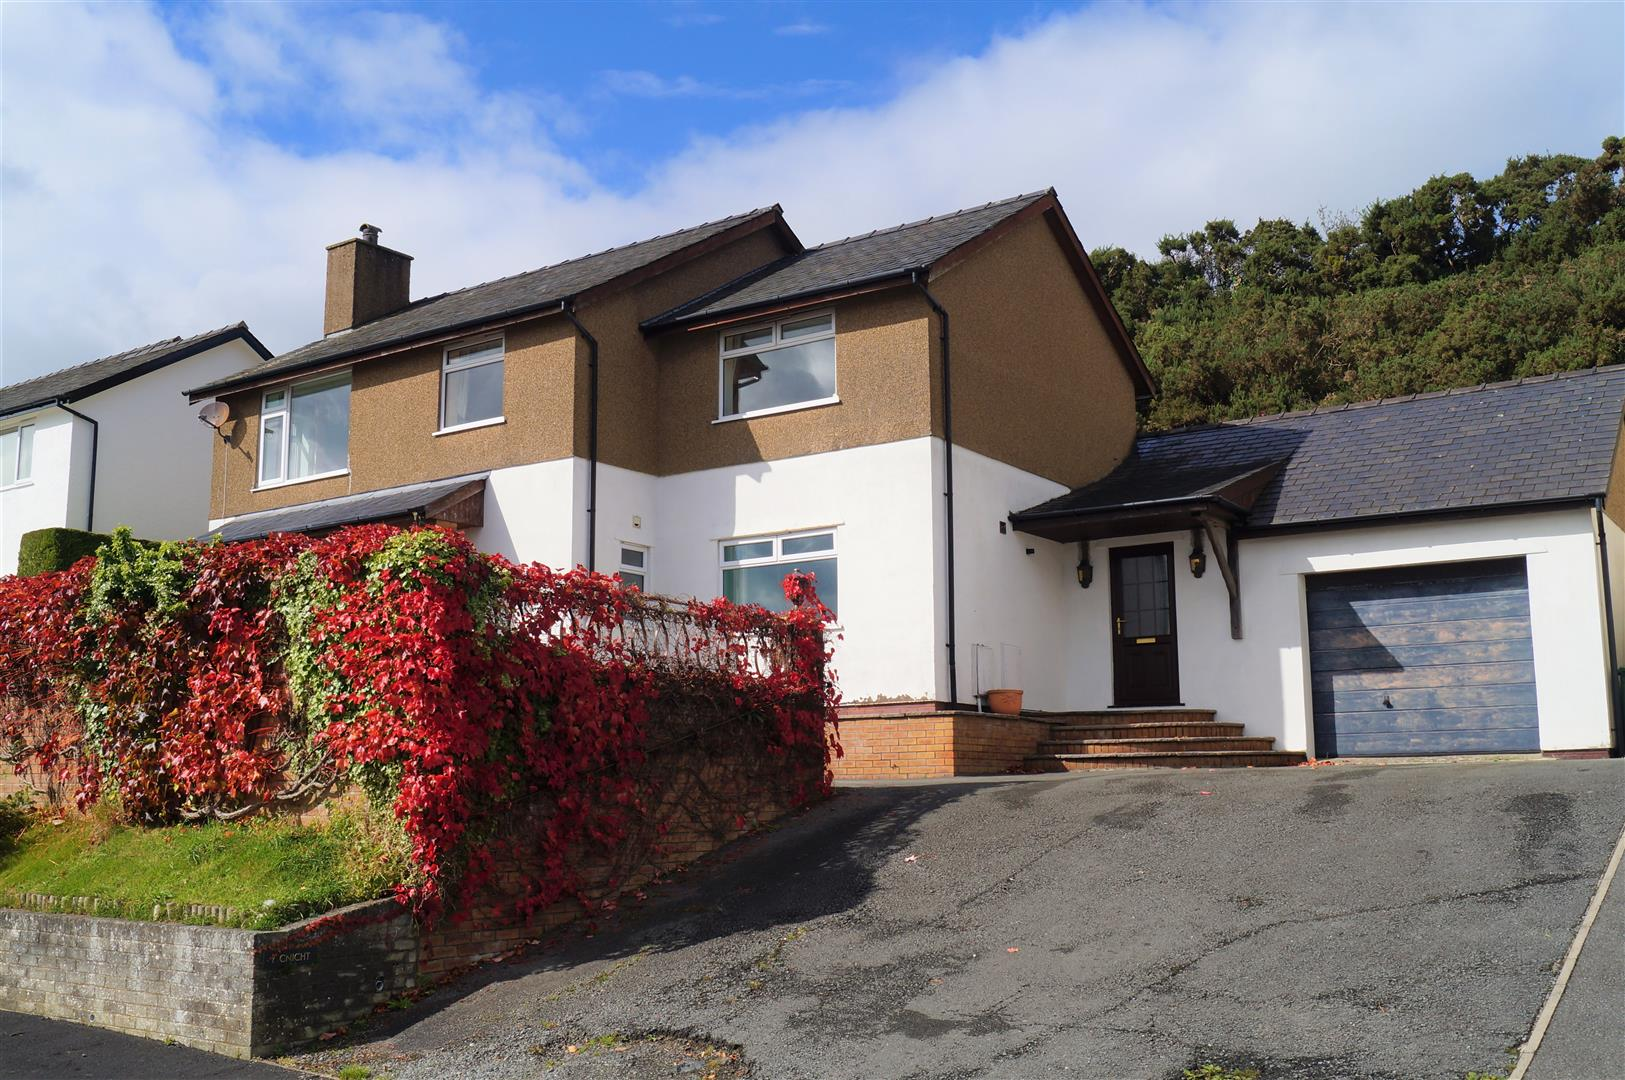 Erwenni, Pwllheli - £320,000/Reduced to